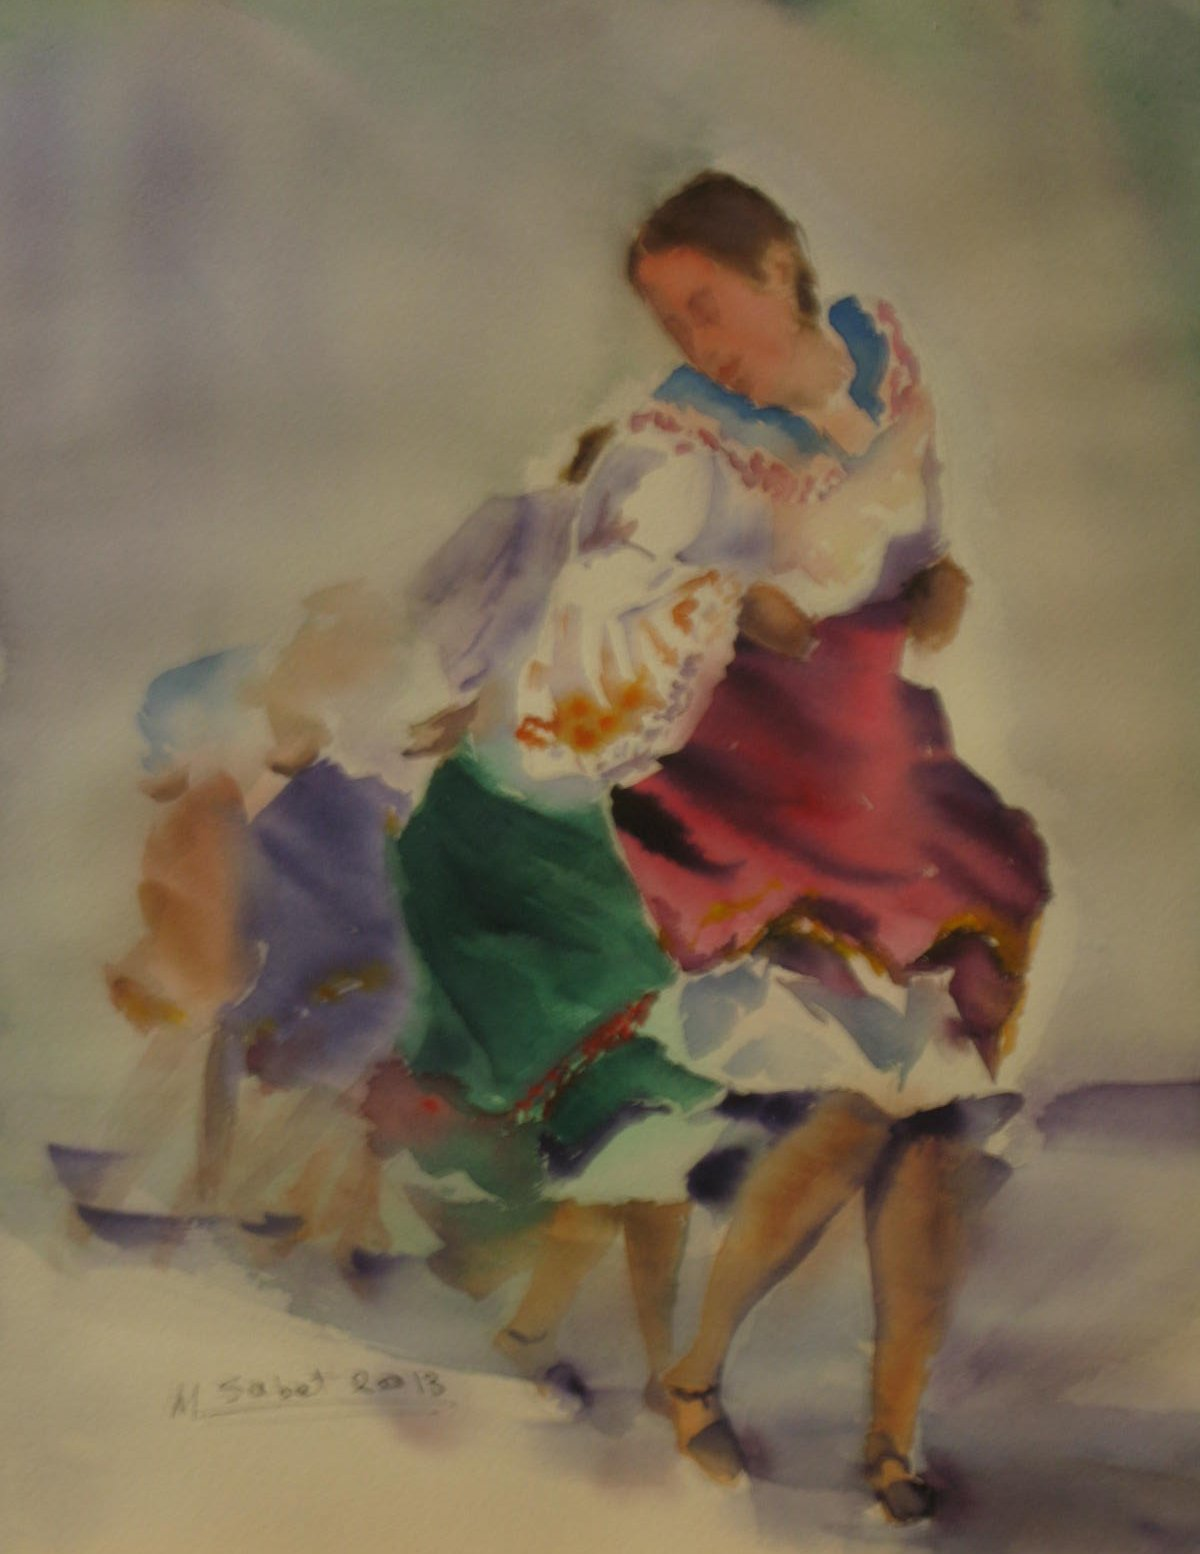 The+Dancers+40x30cm+Watercolor.JPG